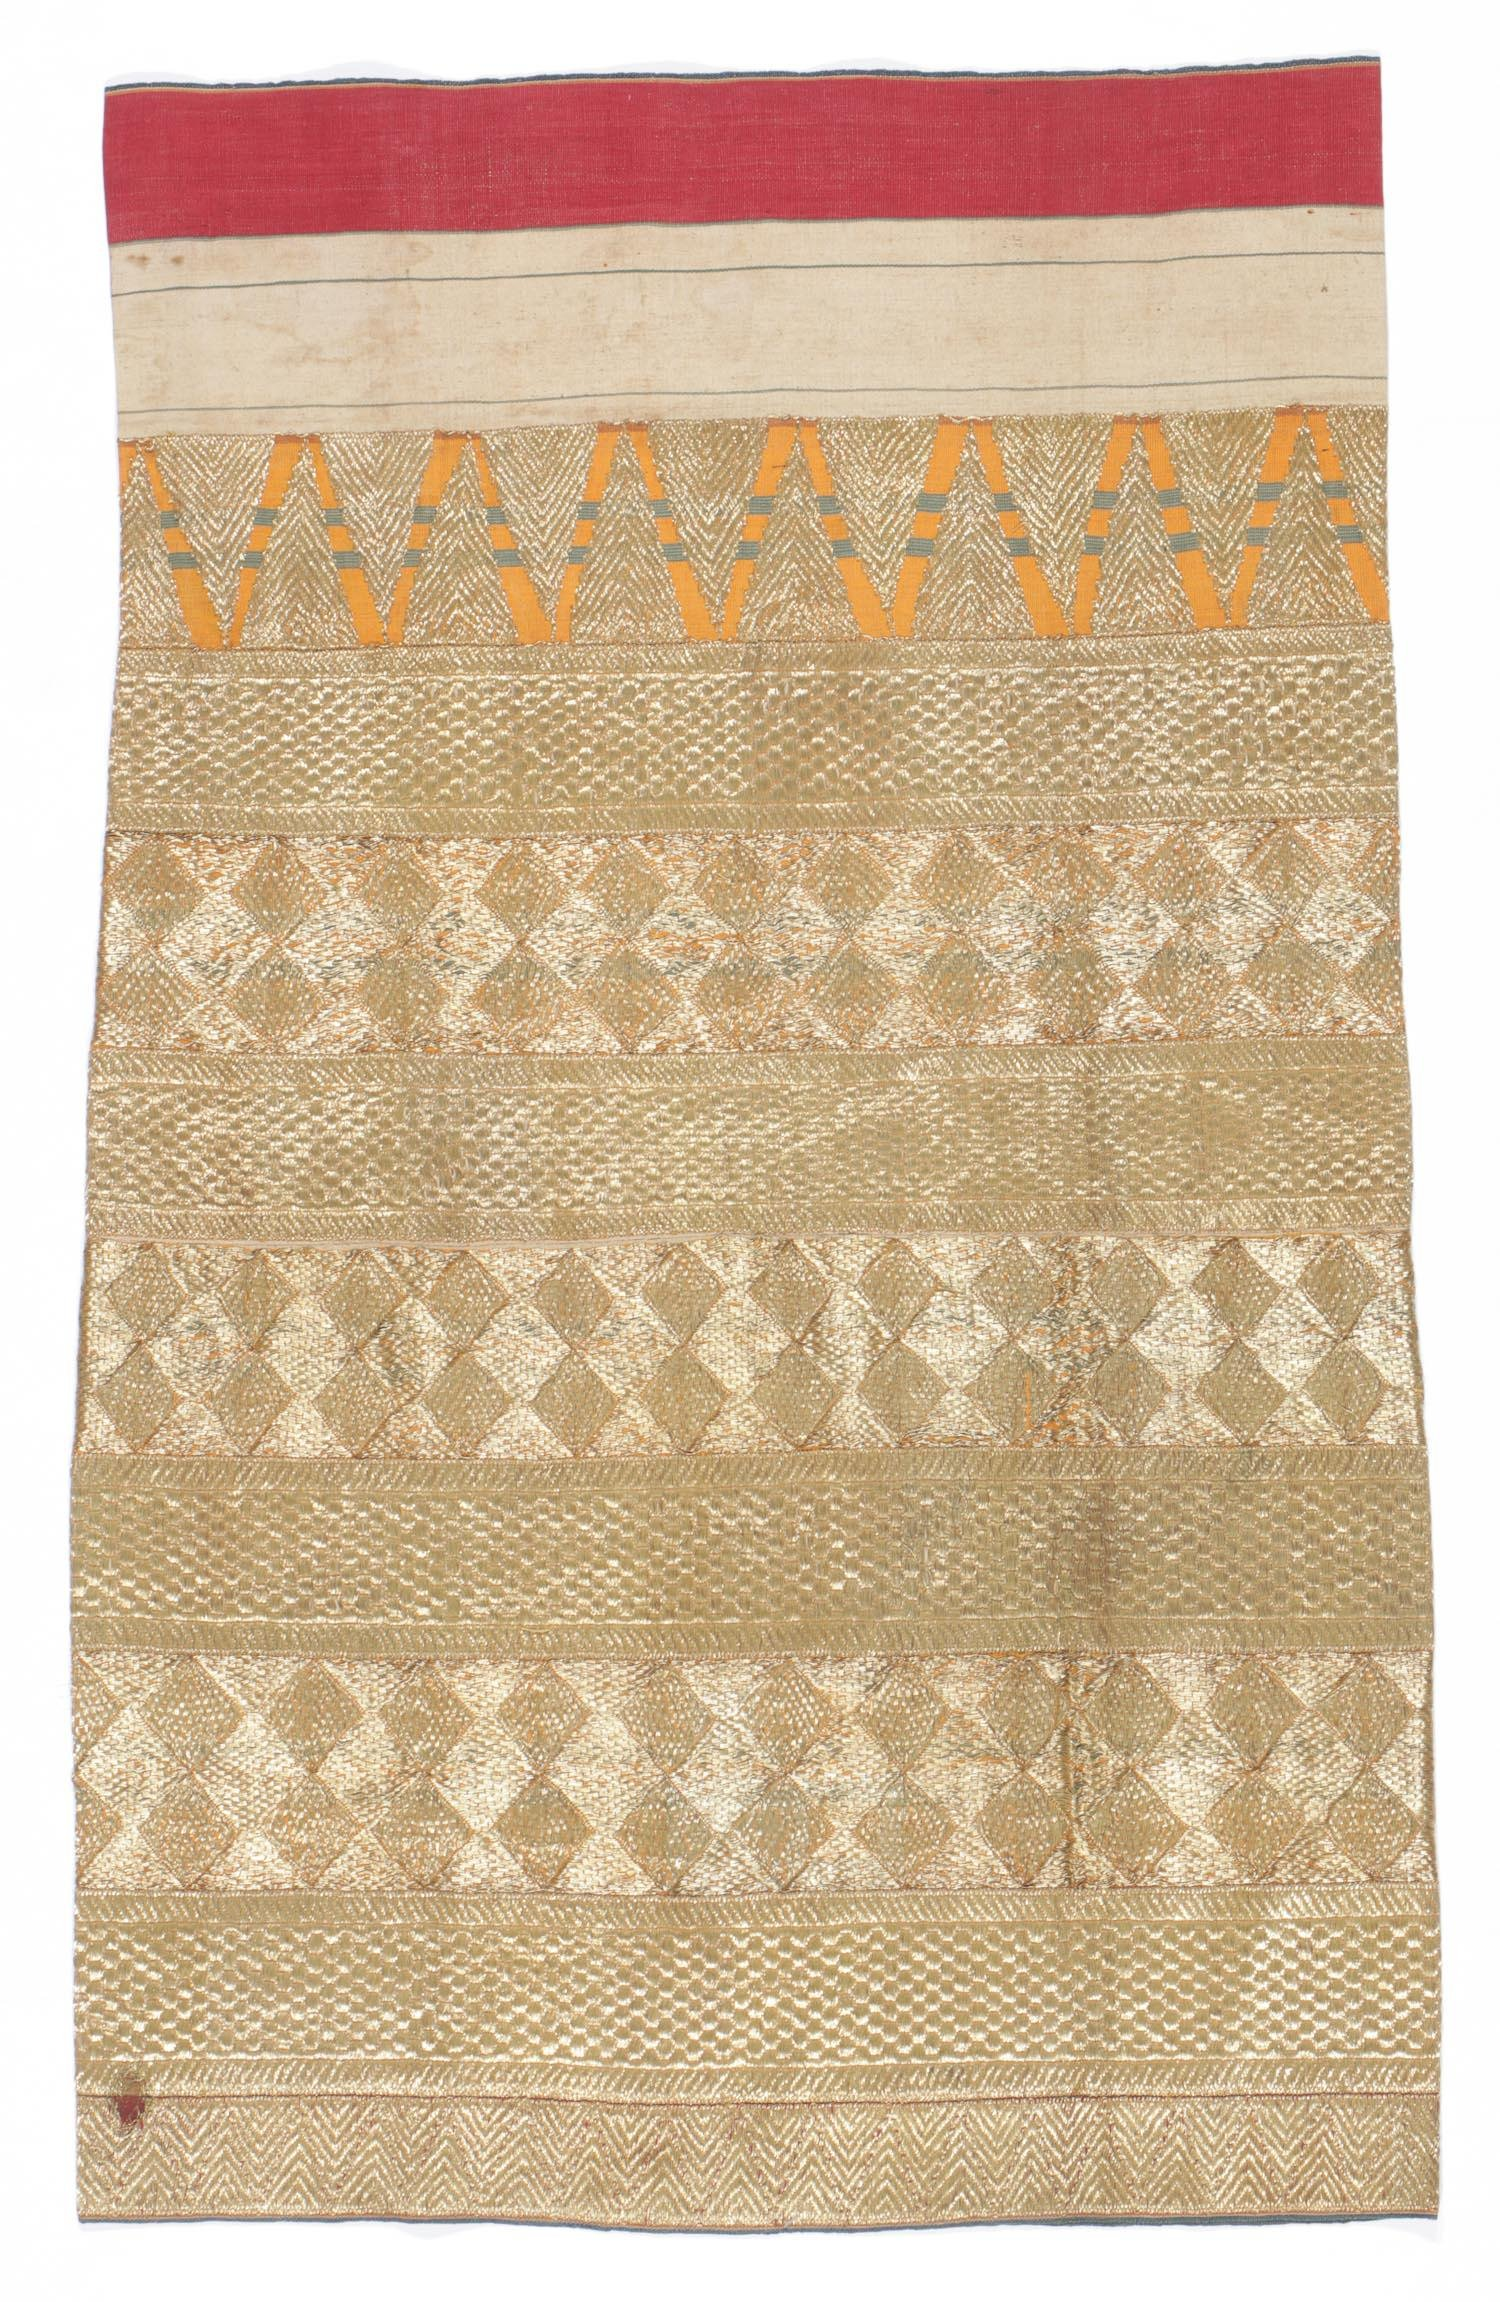 Antique Indonesian Ceremonial Tapis Textile